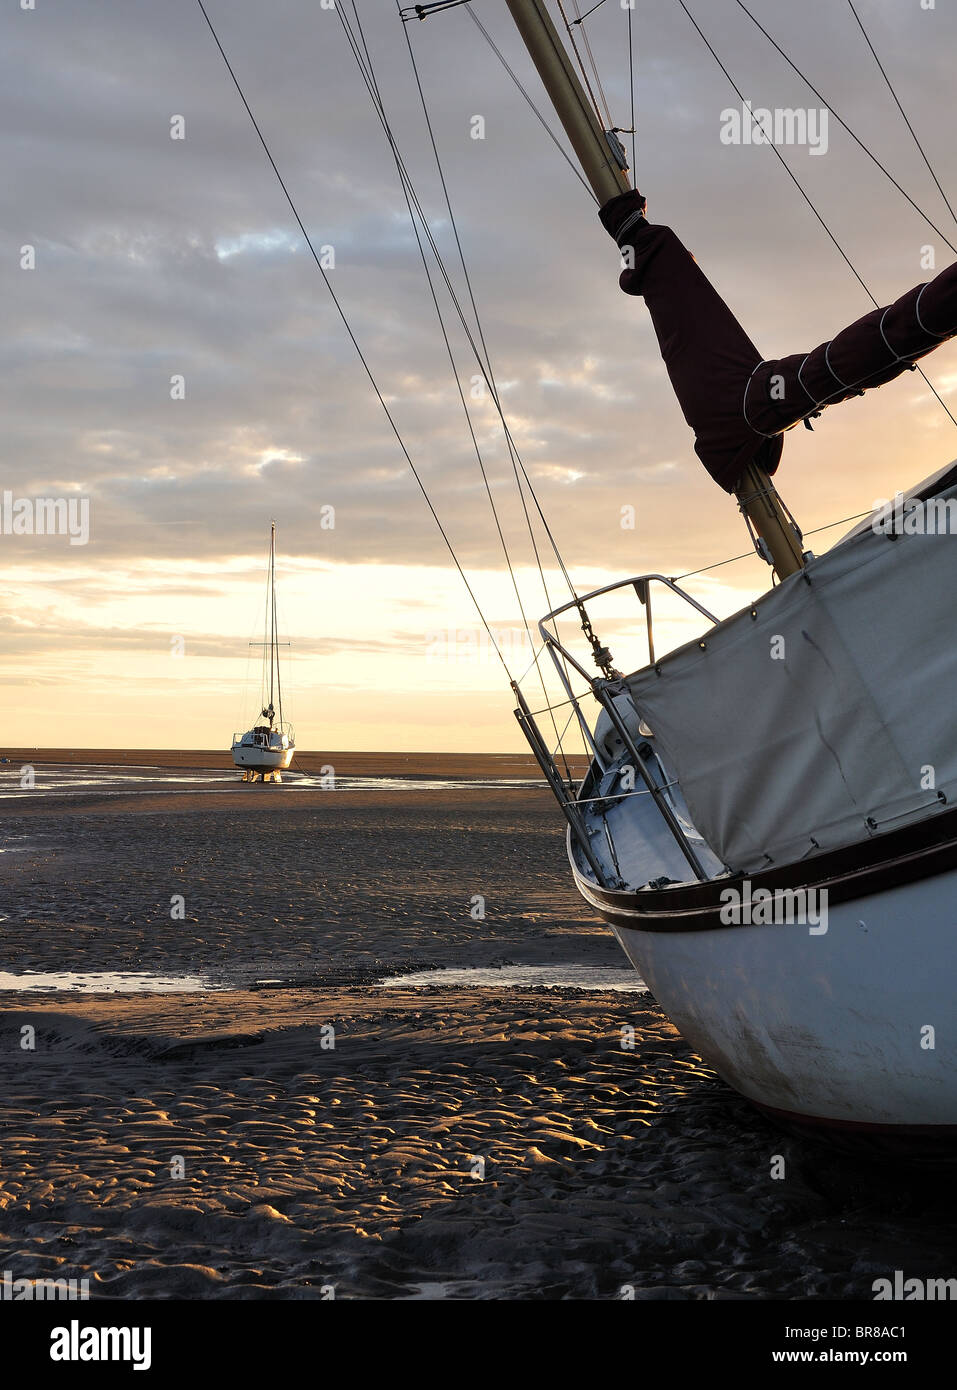 Boat lay on low tide sands in a sunset - Stock Image